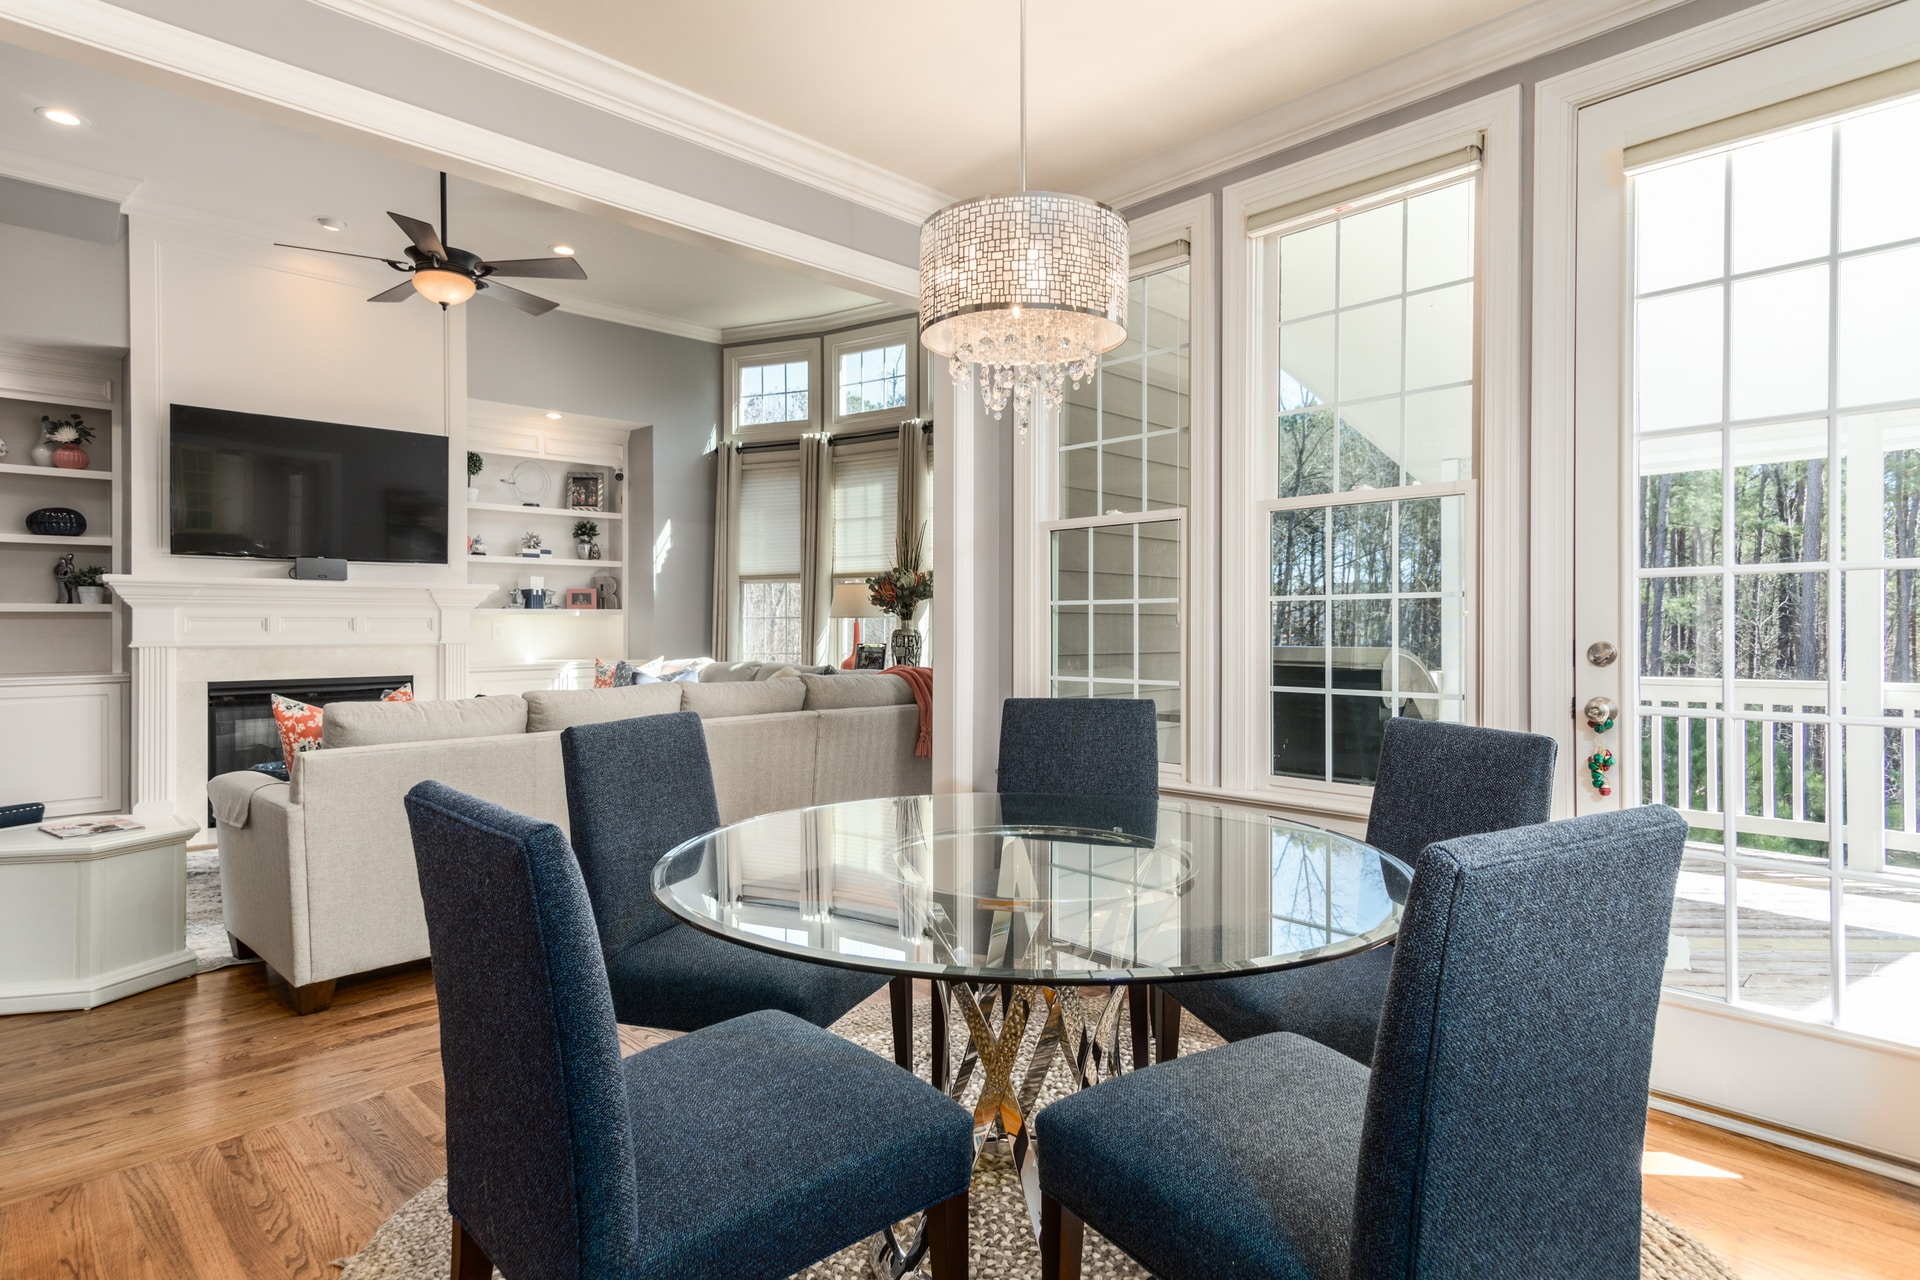 Creating Value Through Home Renovations